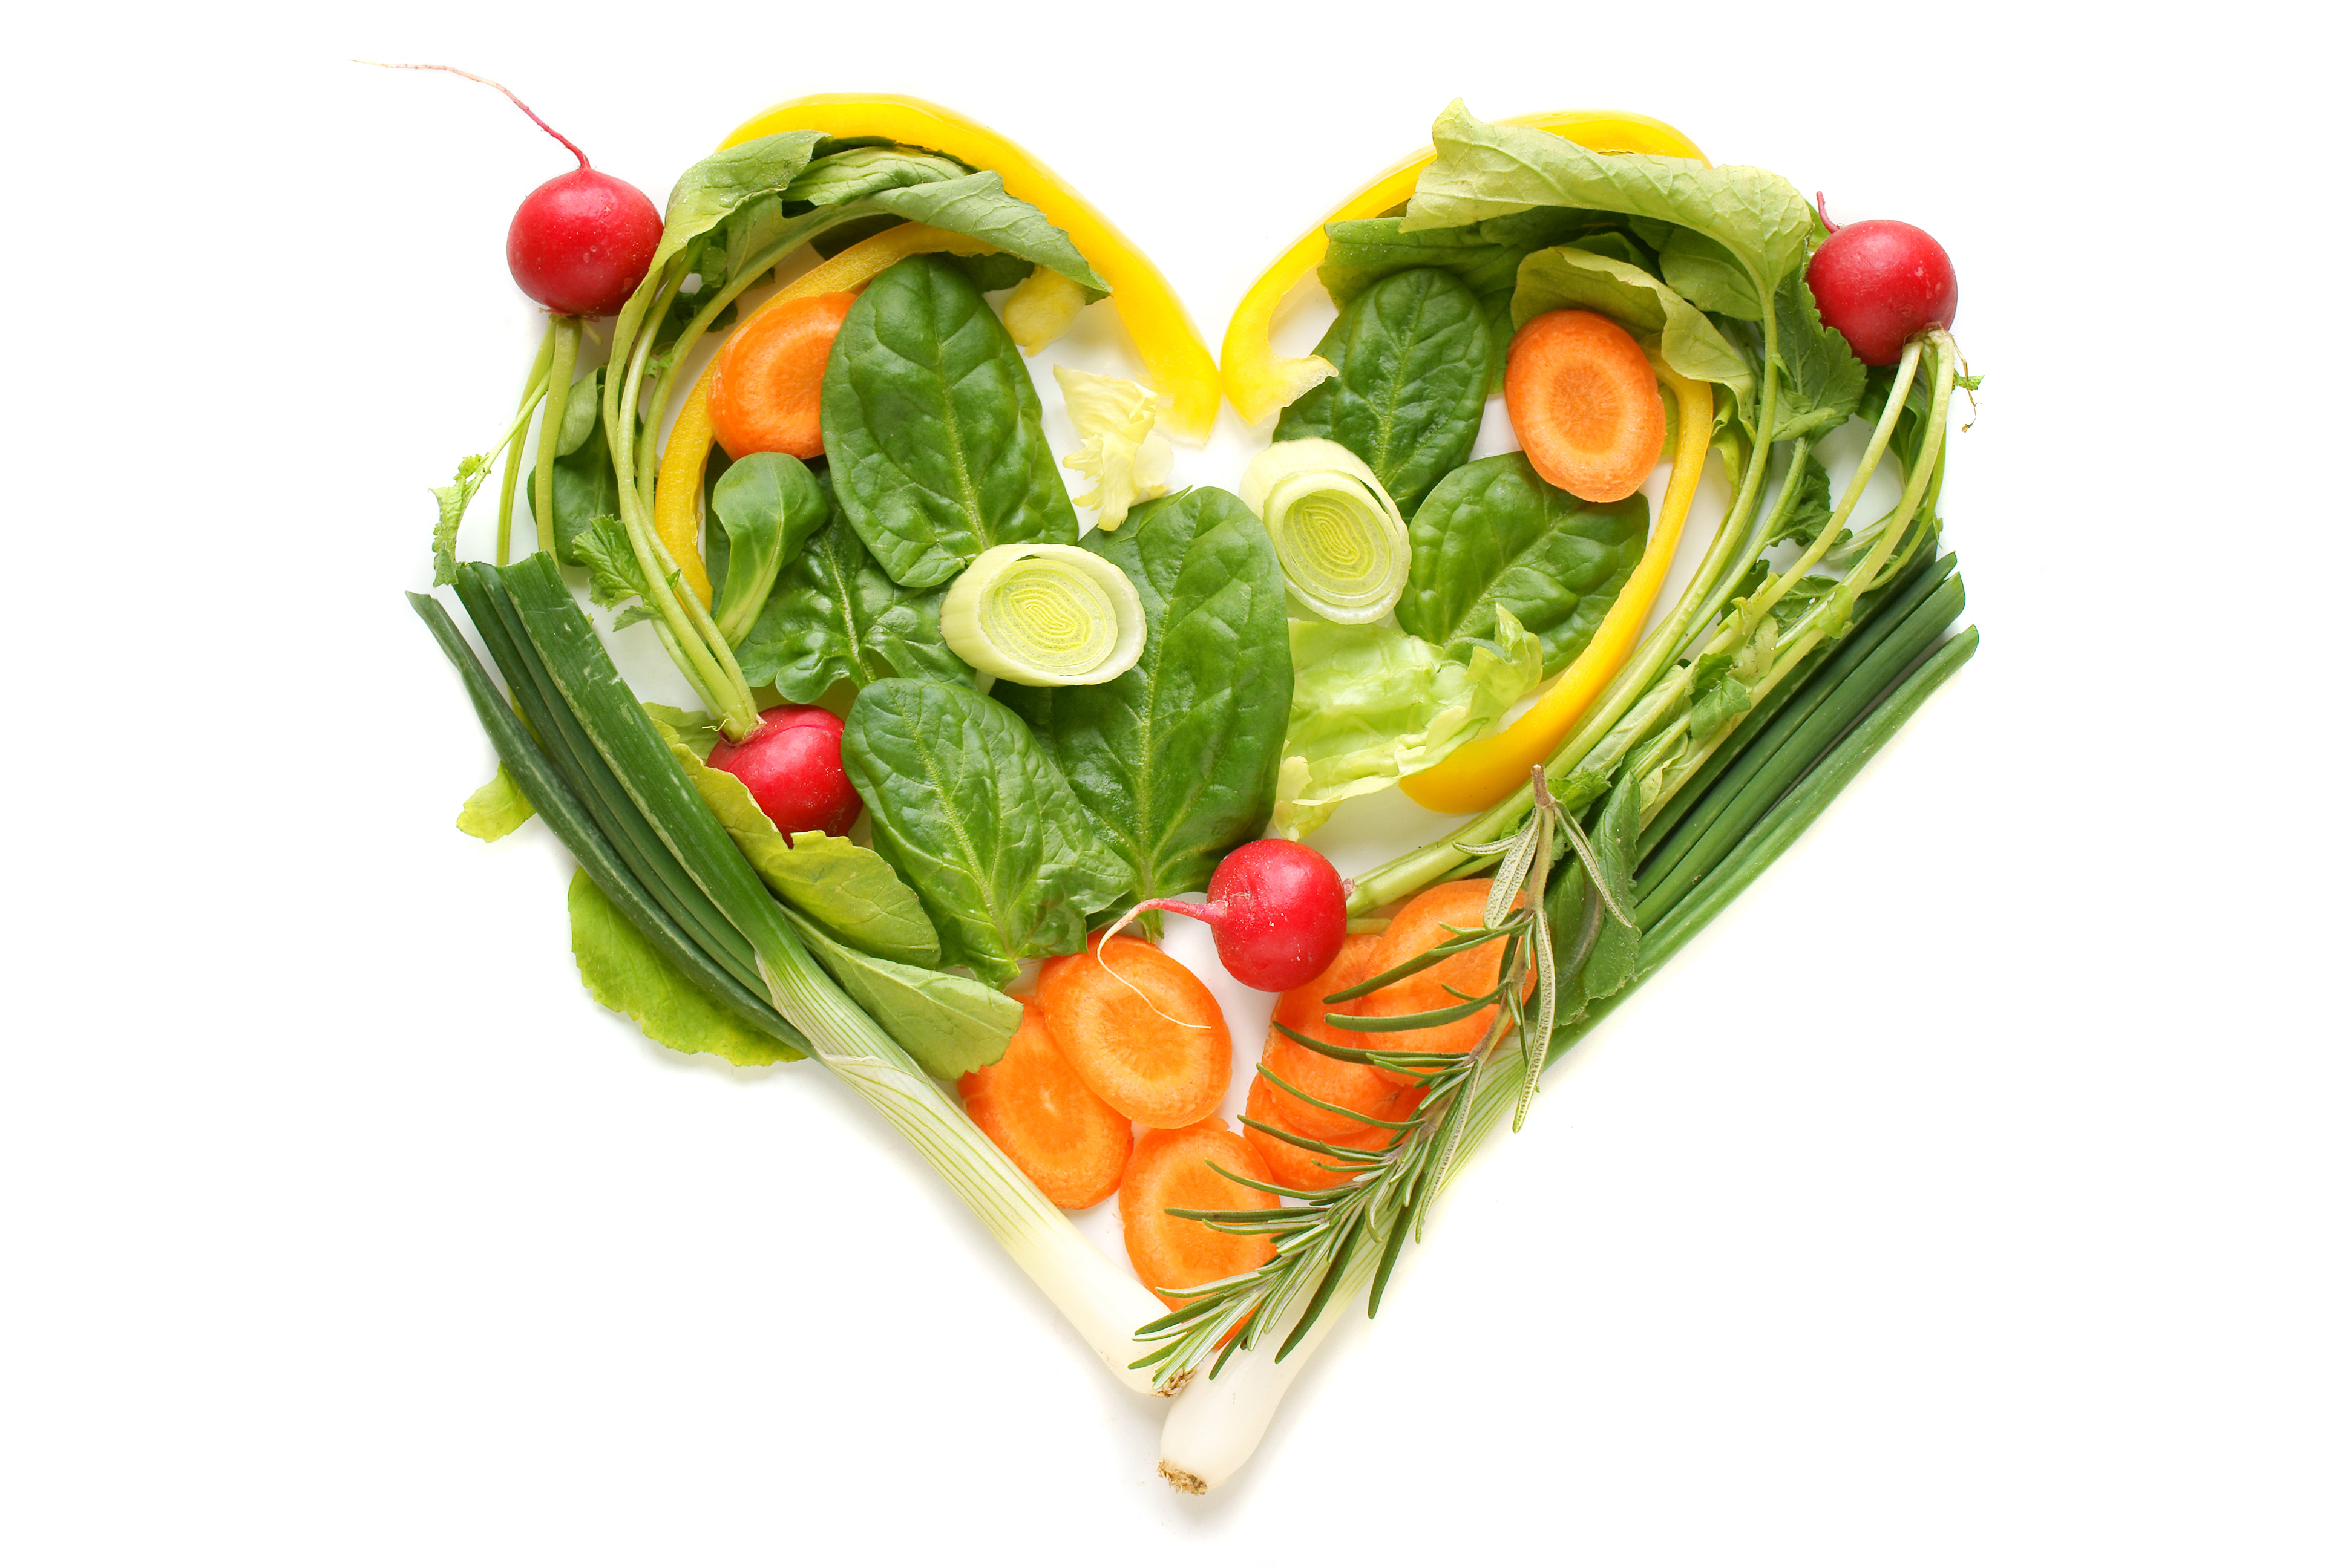 dietetics a lunch proposal for vegetarian pregnant women